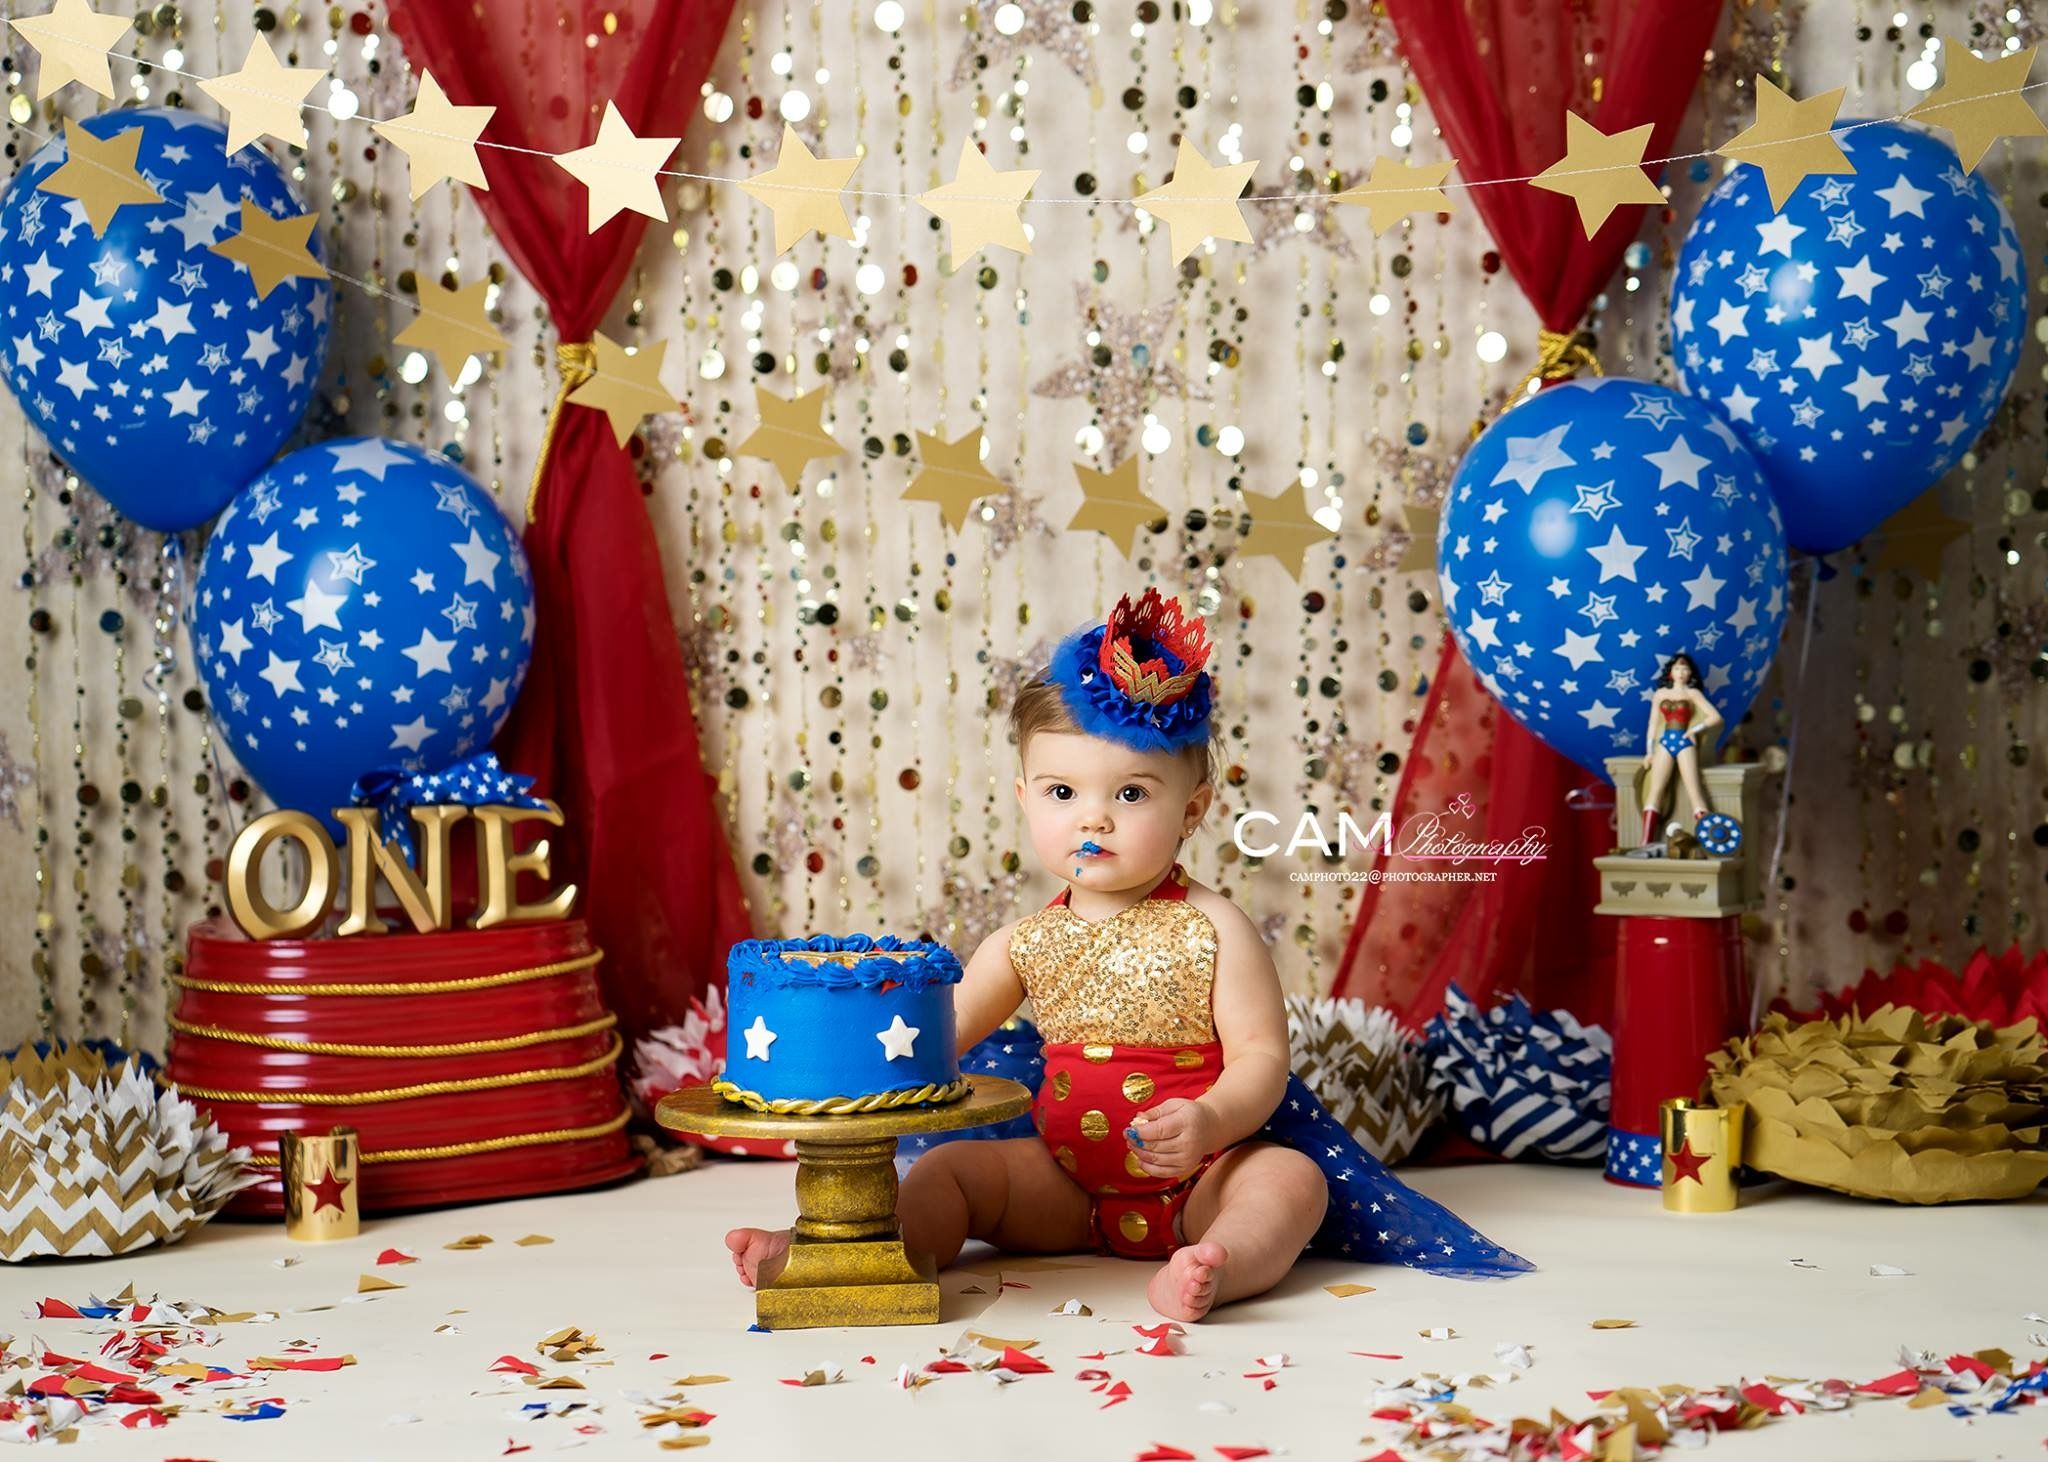 If I Ever Have A Girl Woman First Birthday Cake Smash Photo Theme Ideas Girl Messy Woman Birthday Party Baby Girl Birthday Baby Girl 1st Birthday